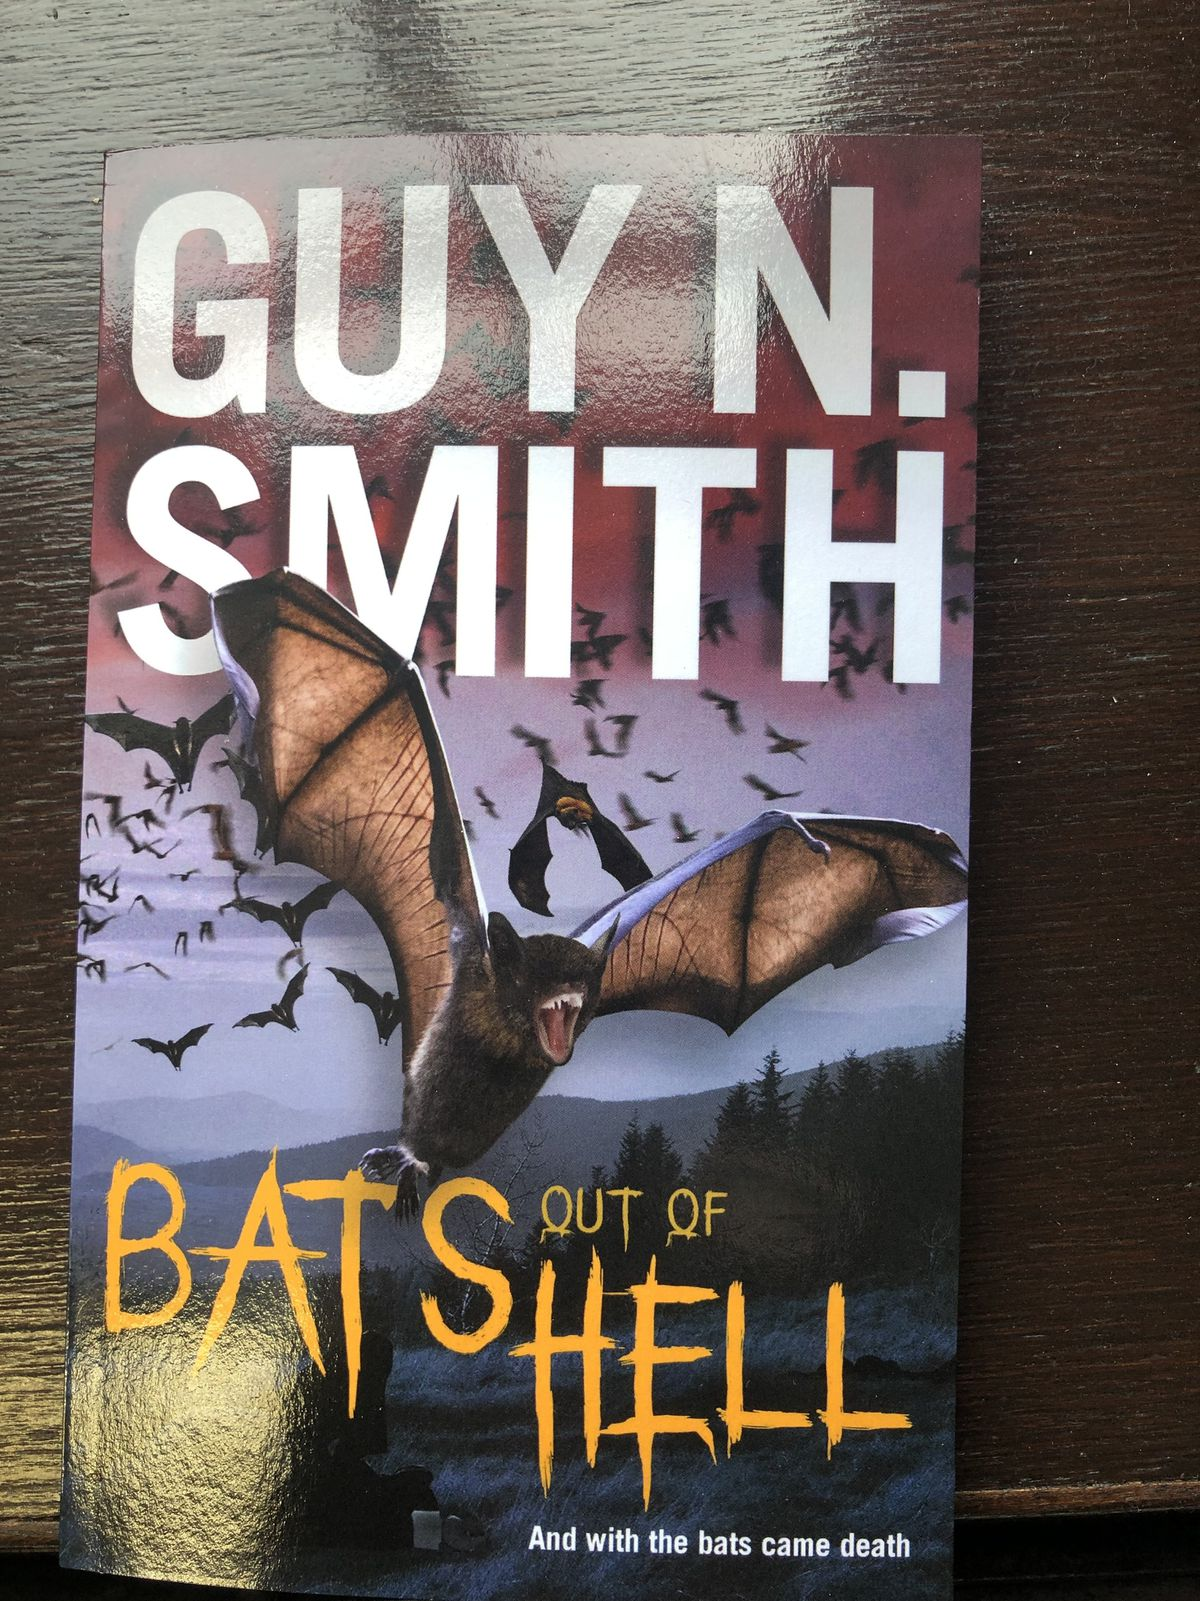 Guy N Smith's novel about a bat causing a pandemic on Cannock Chase was re-released last year